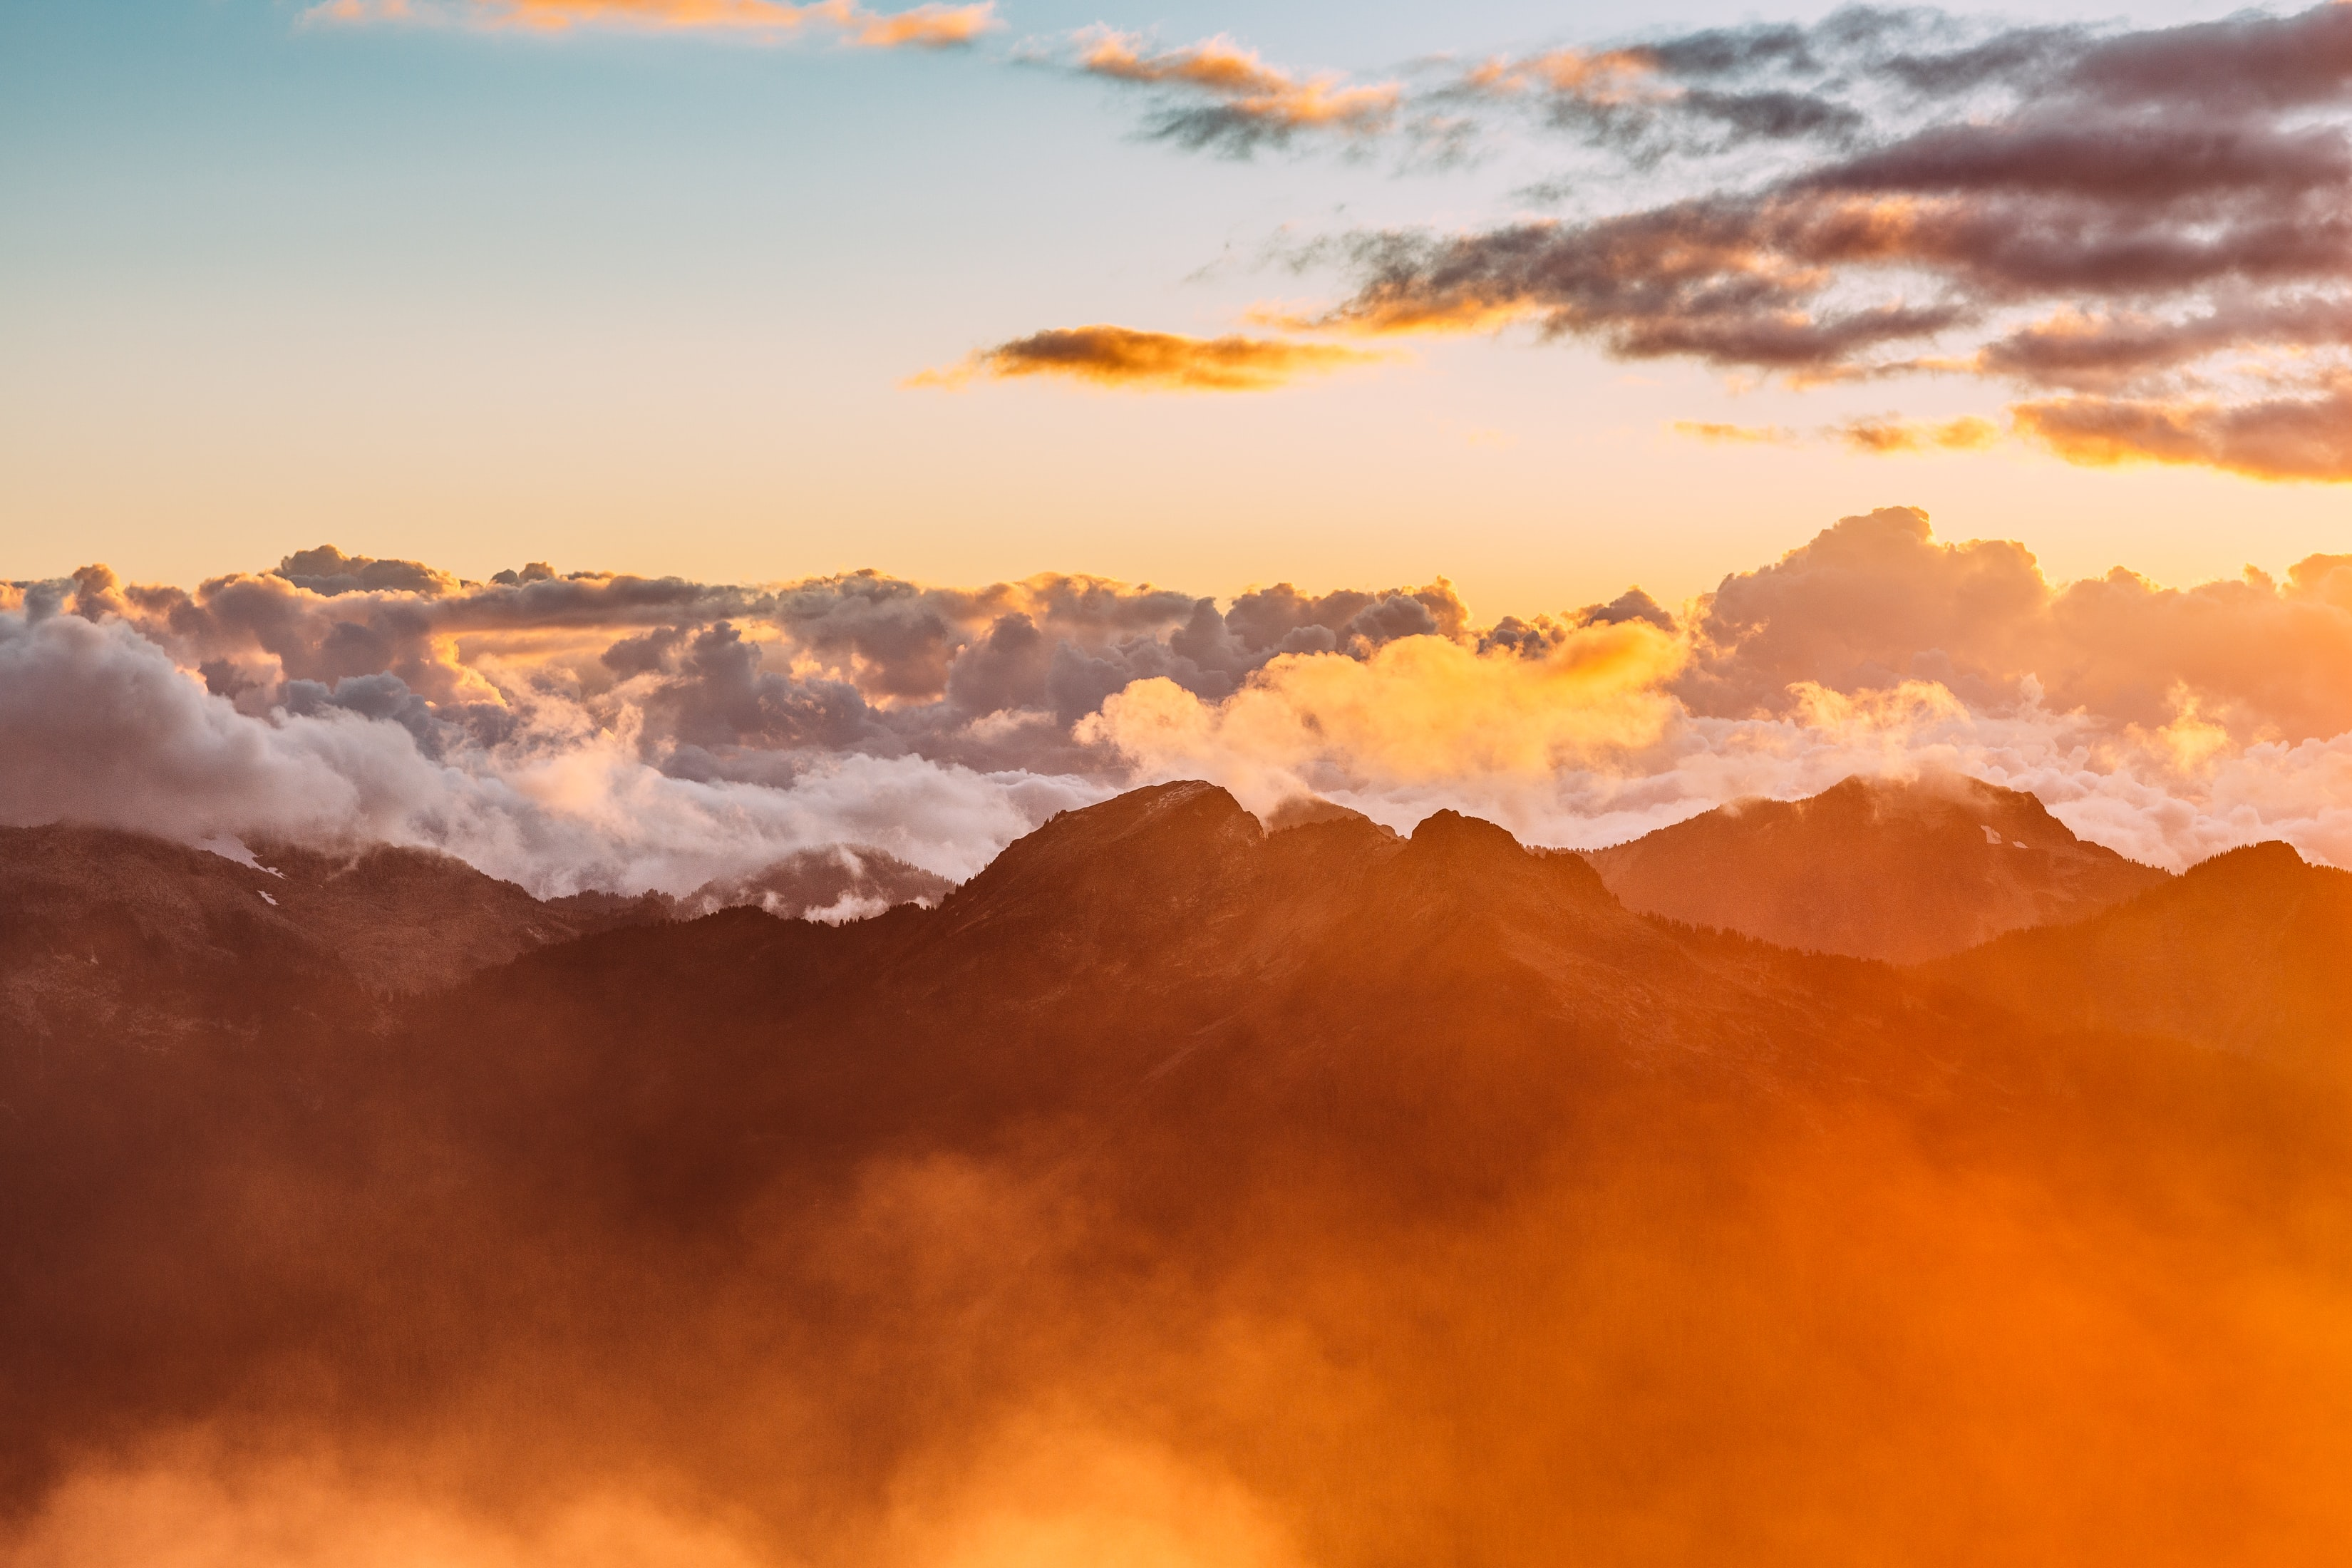 landscape photography of mountains with cloudy skies during golden hour